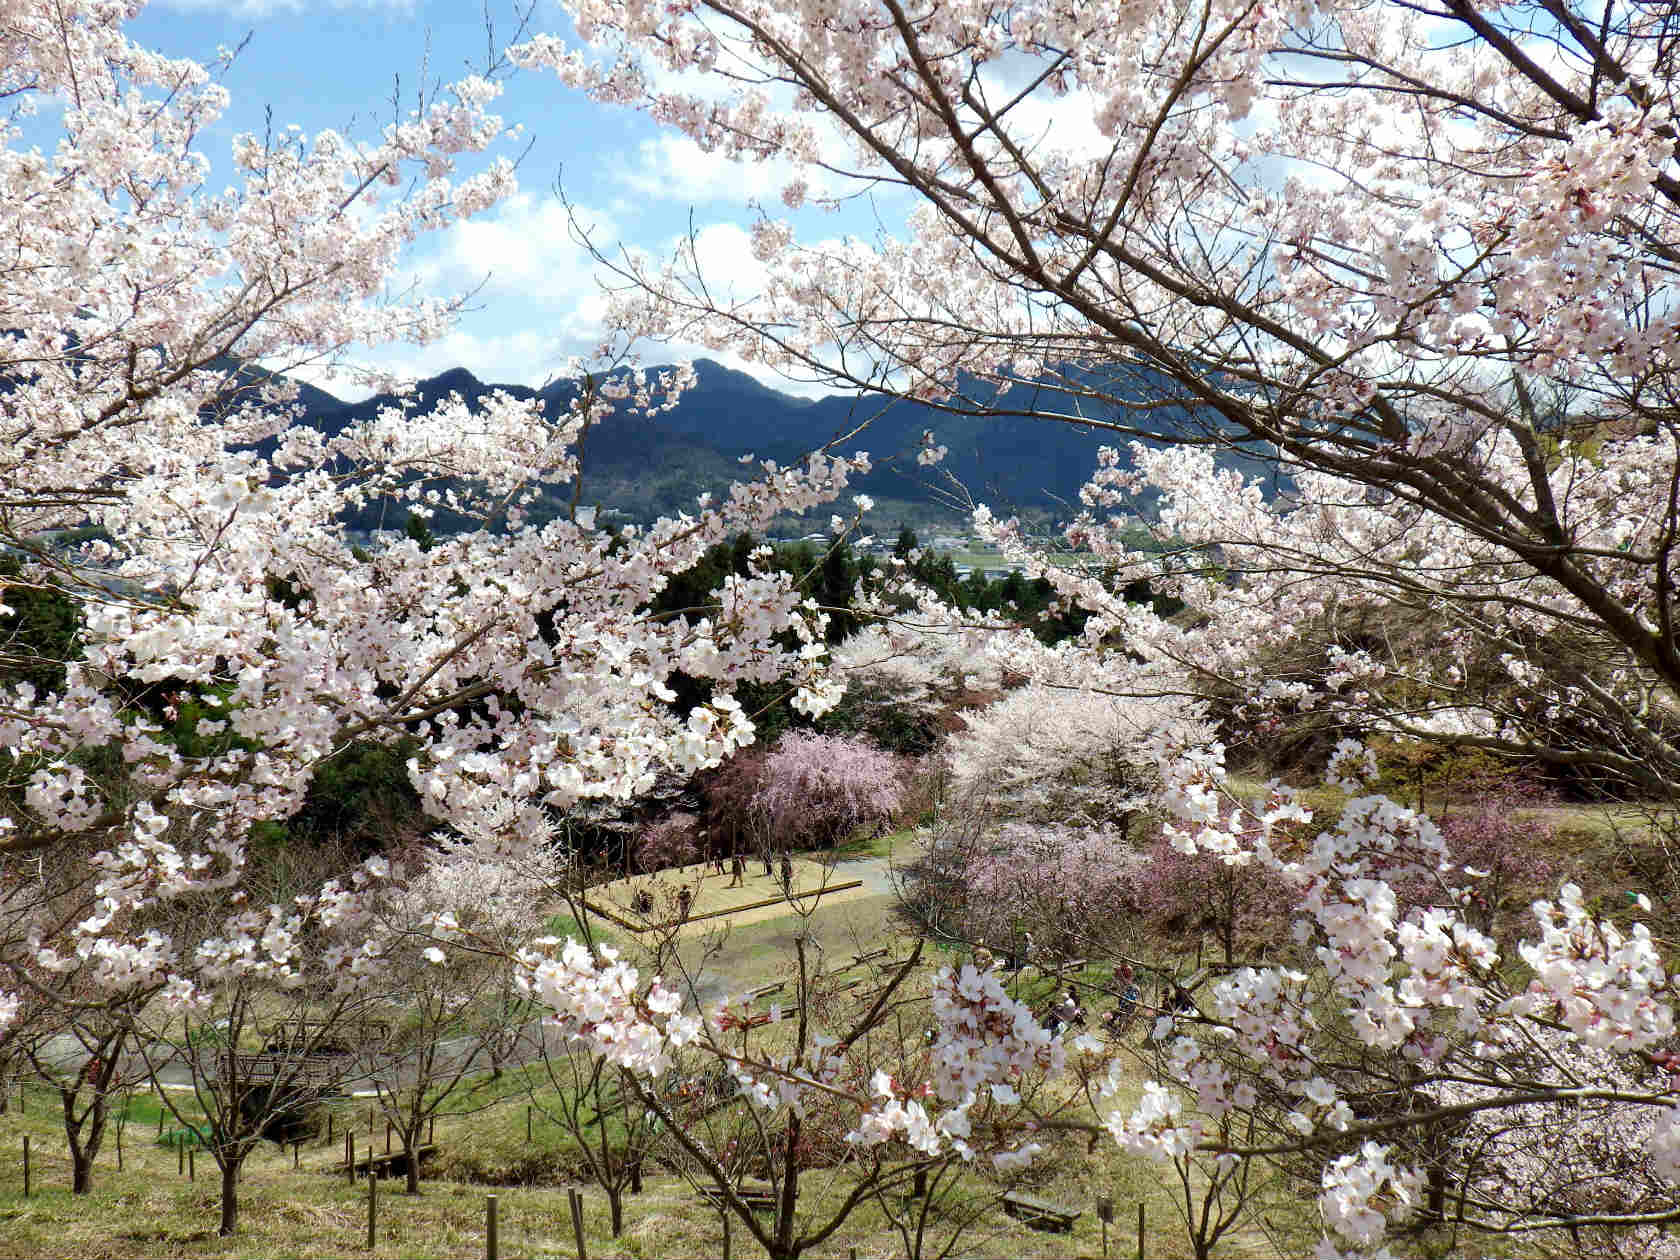 22a 桜越しに見える山々